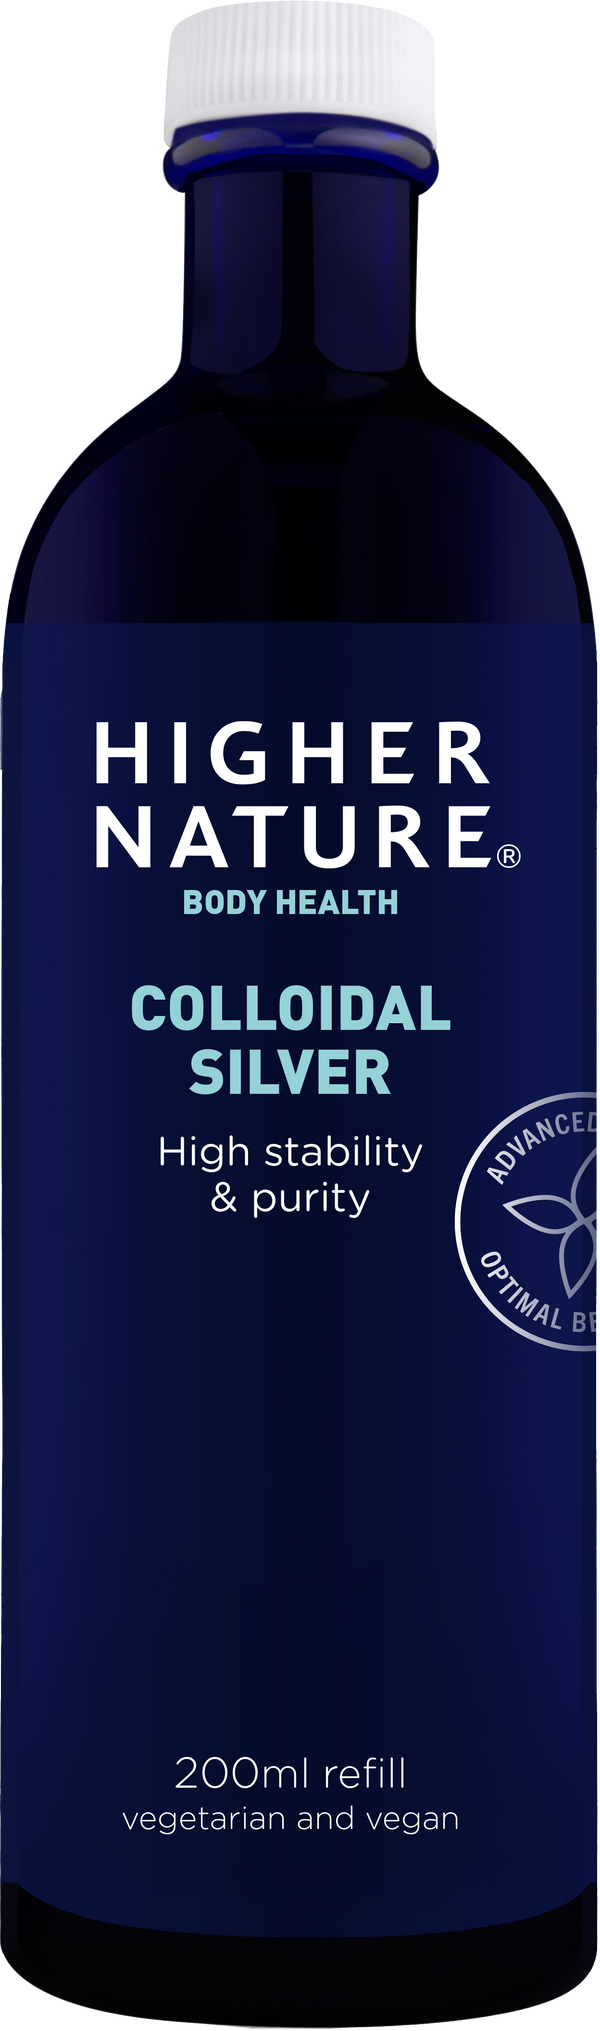 HIGHER NATURE Colloidal Silver refill